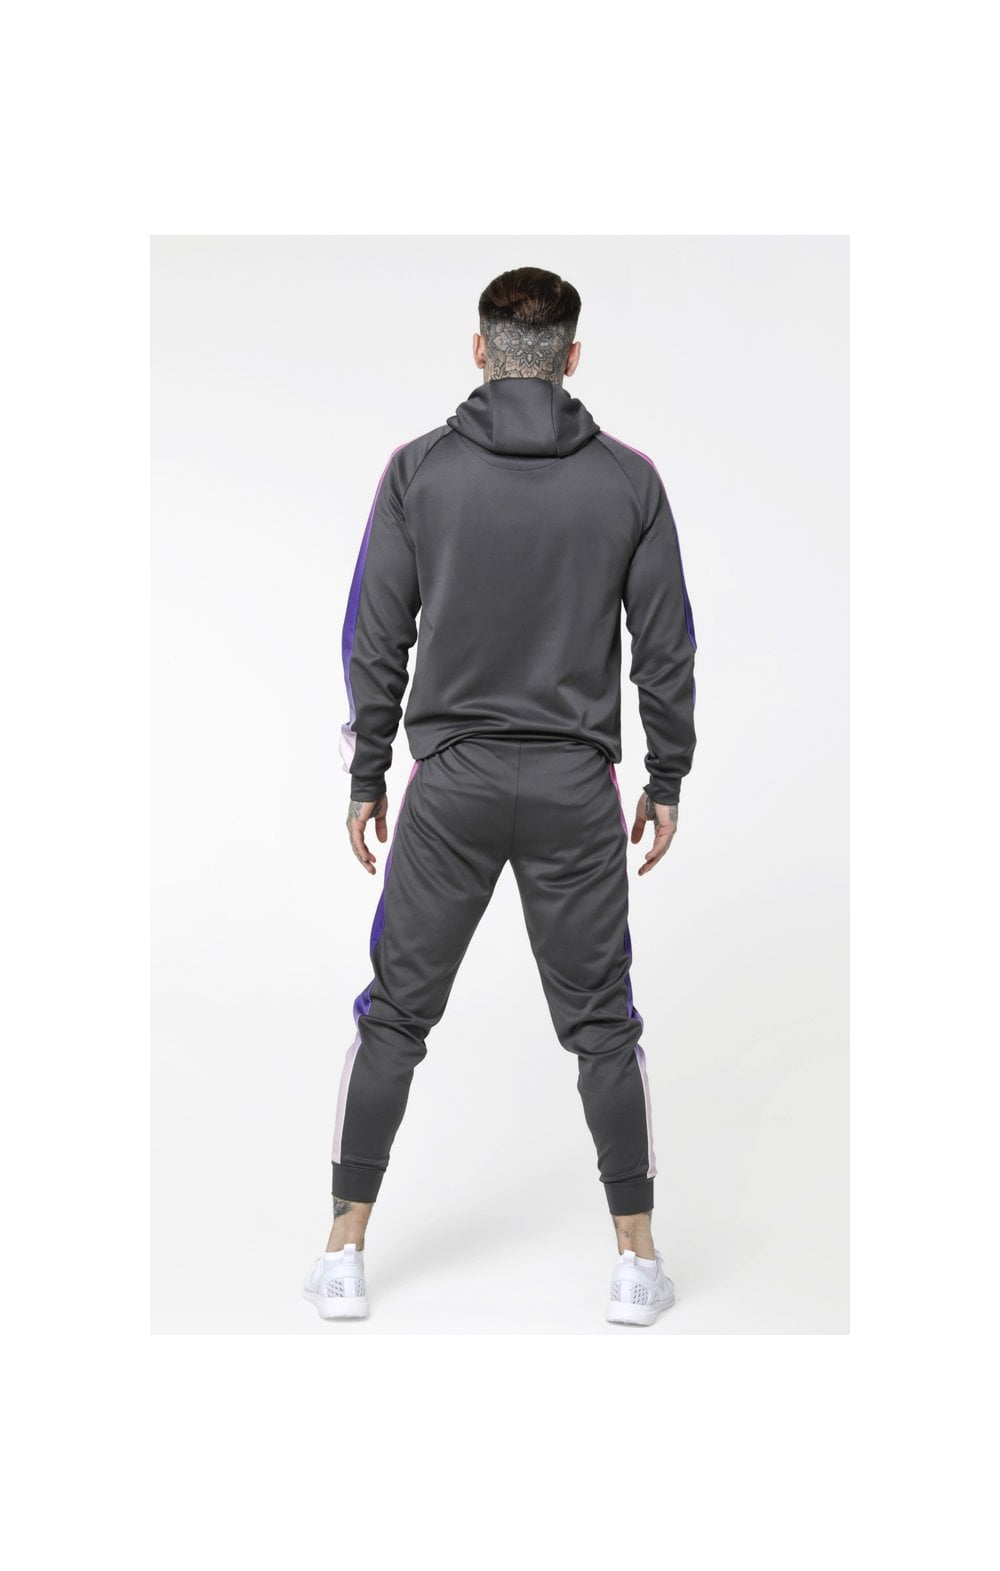 Load image into Gallery viewer, SikSilk Poly Overhead Fade Panel Hoodie - Urban Grey & Neon Tri Fade (5)